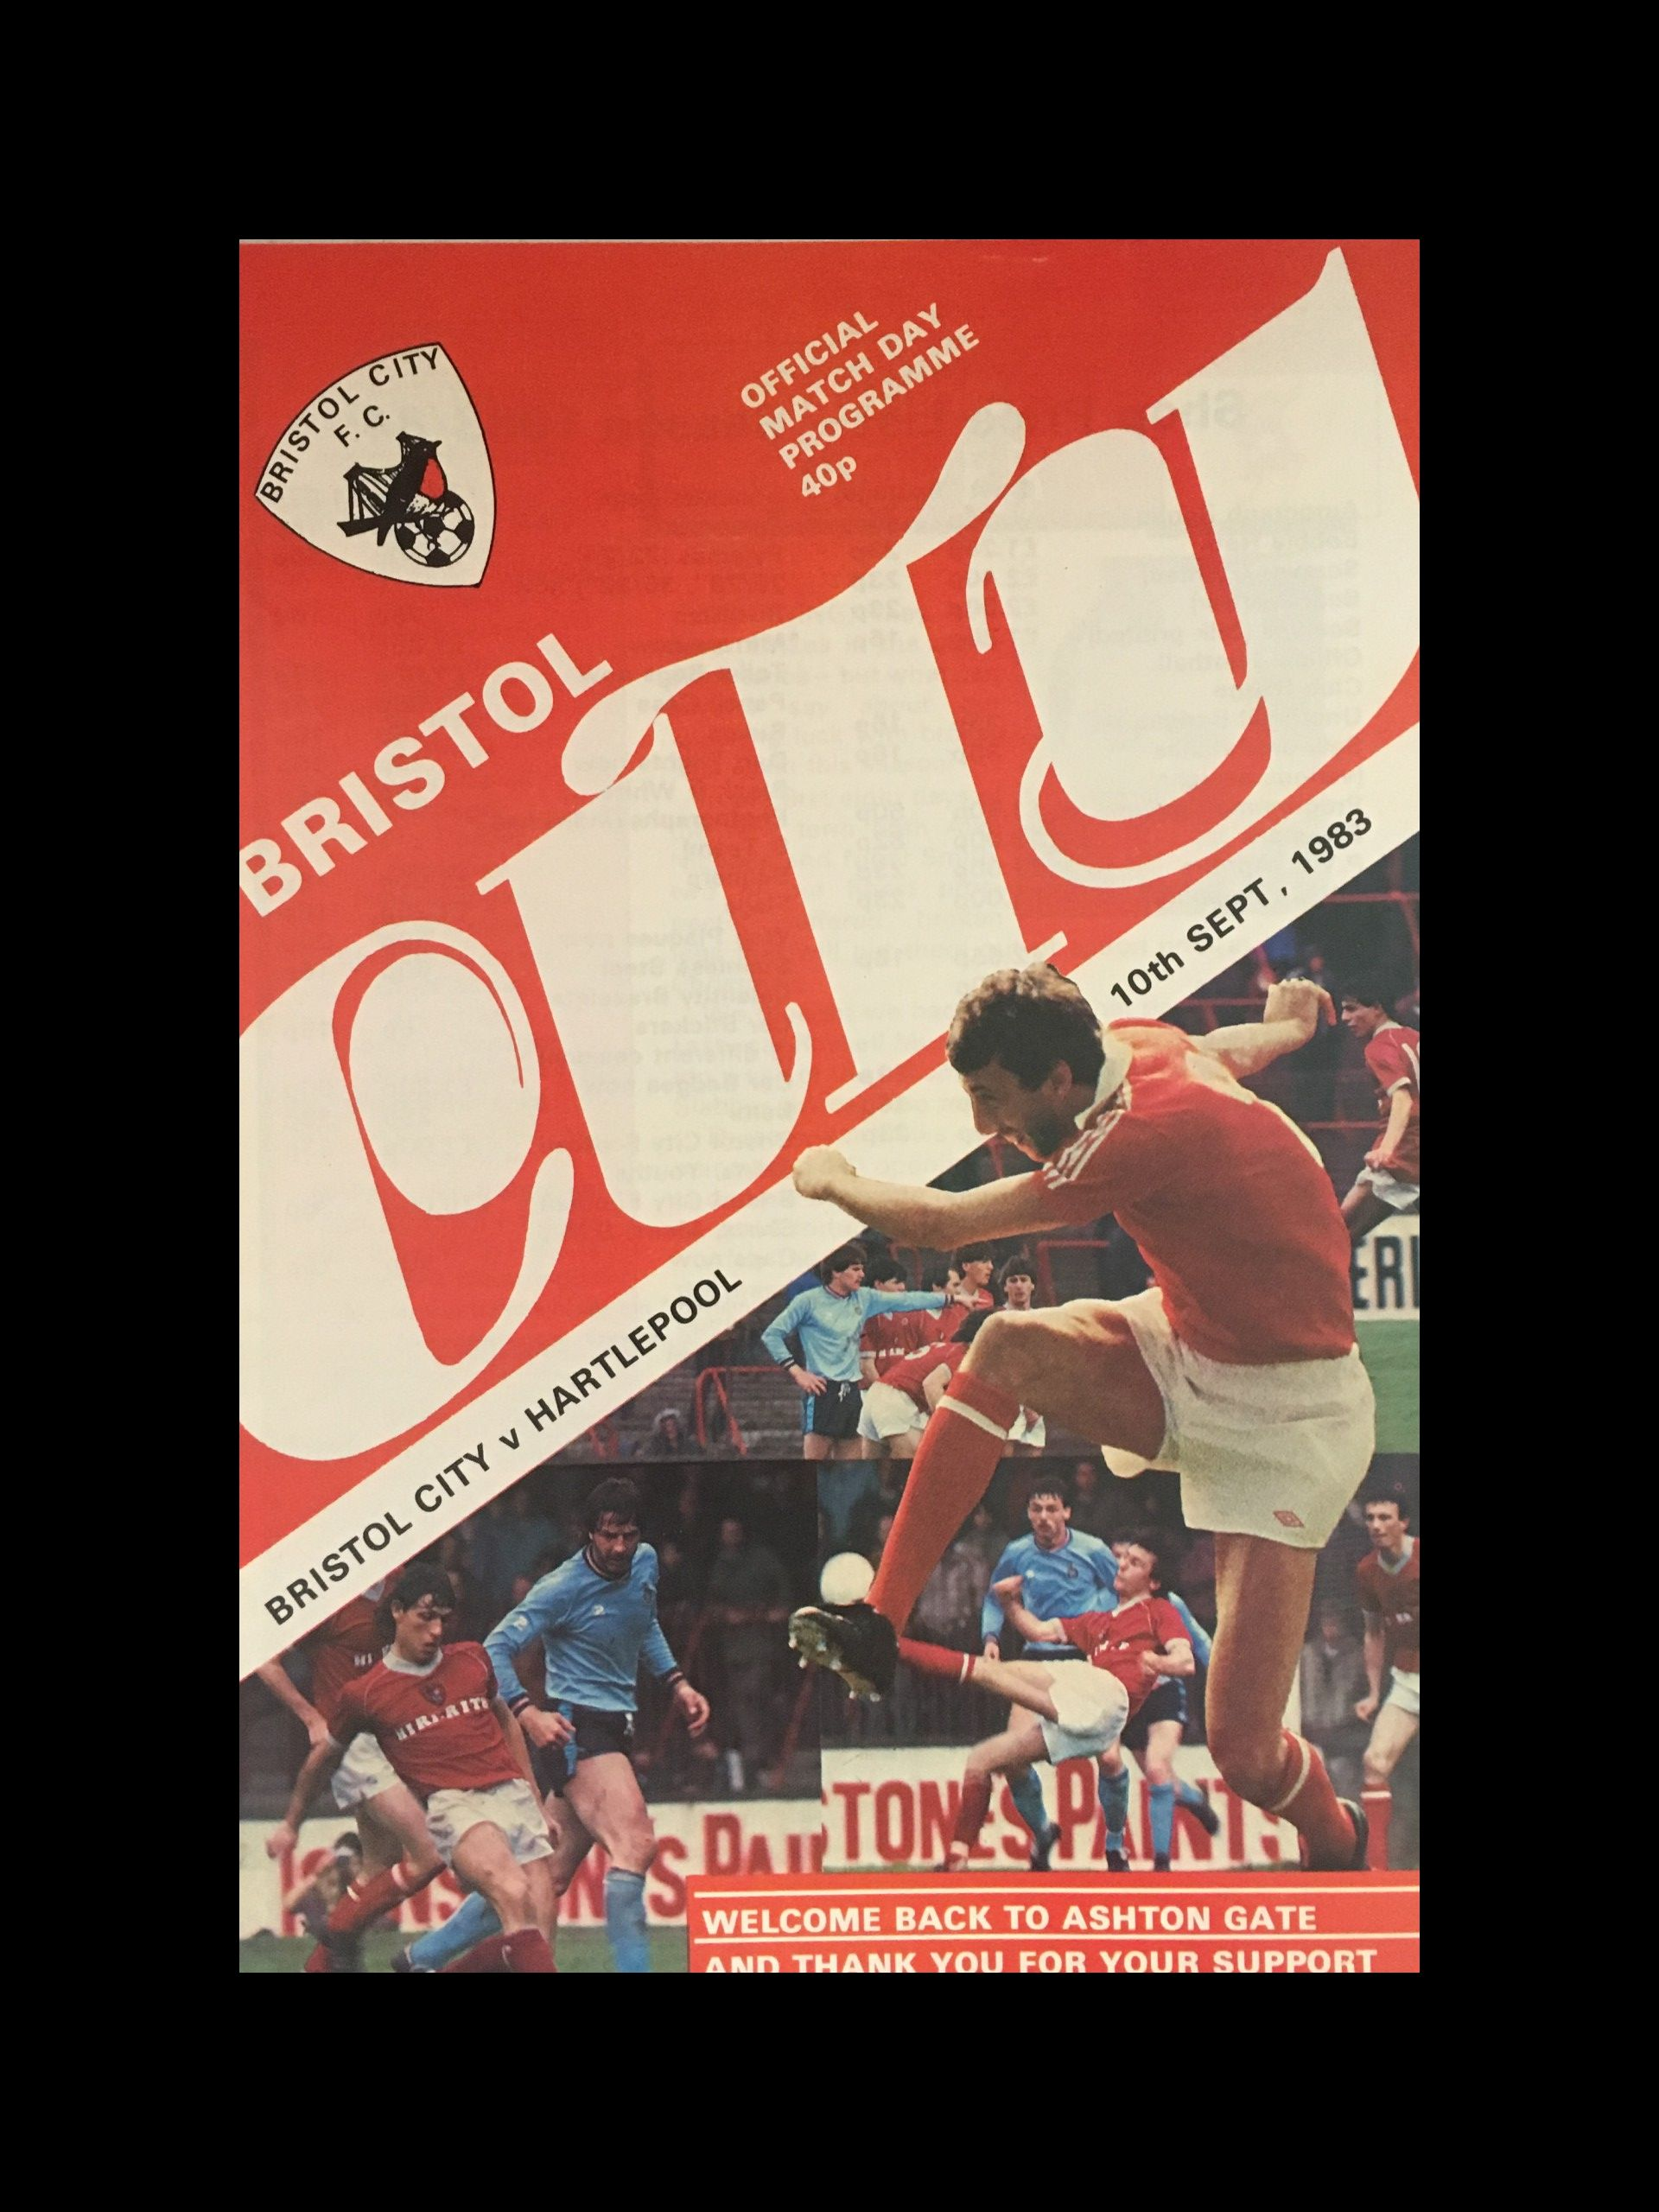 Bristol City v Hartlepool United 10-09-83 Programme